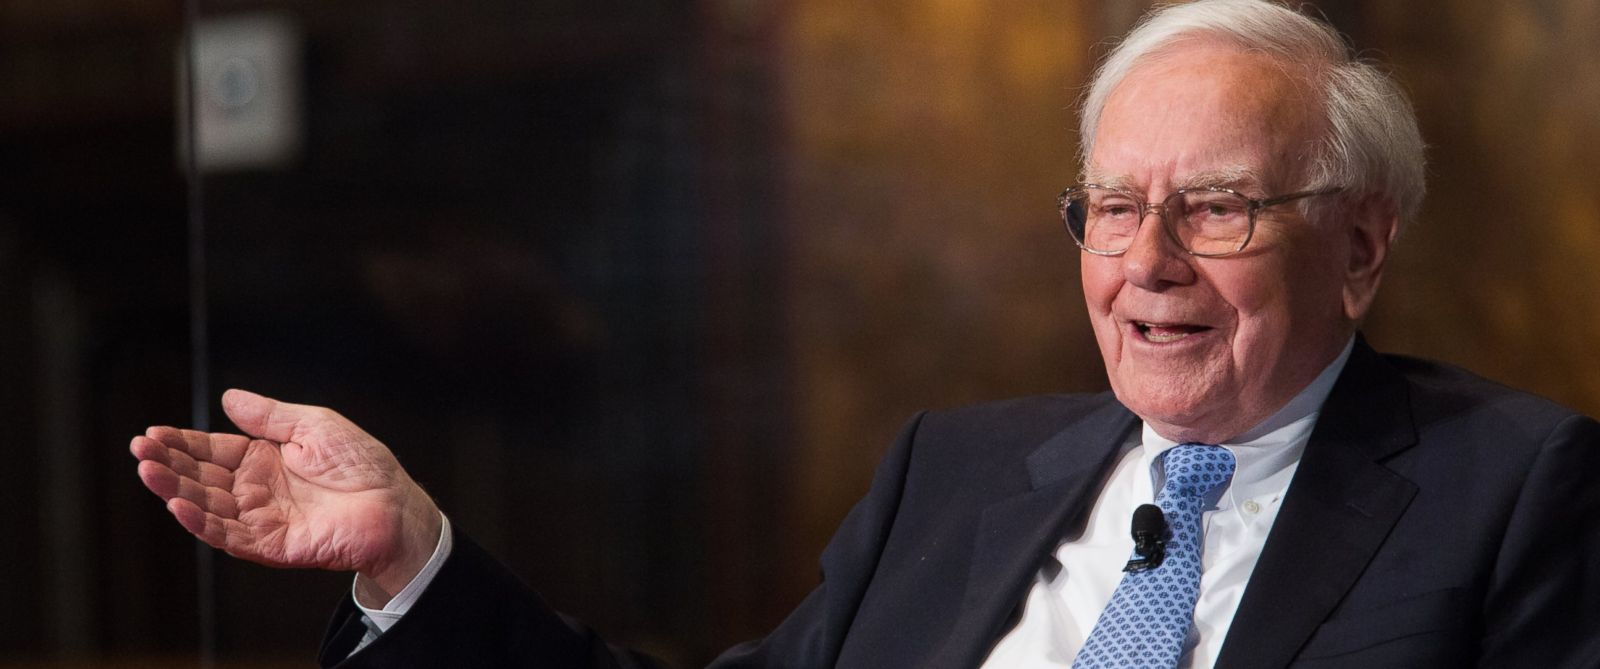 PHOTO: Warren Buffett, chairman of the board and CEO of Berkshire Hathaway, speaks in Gaston Hall at Georgetown University in this Sept. 19, 2013, file photo in Washington, DC.